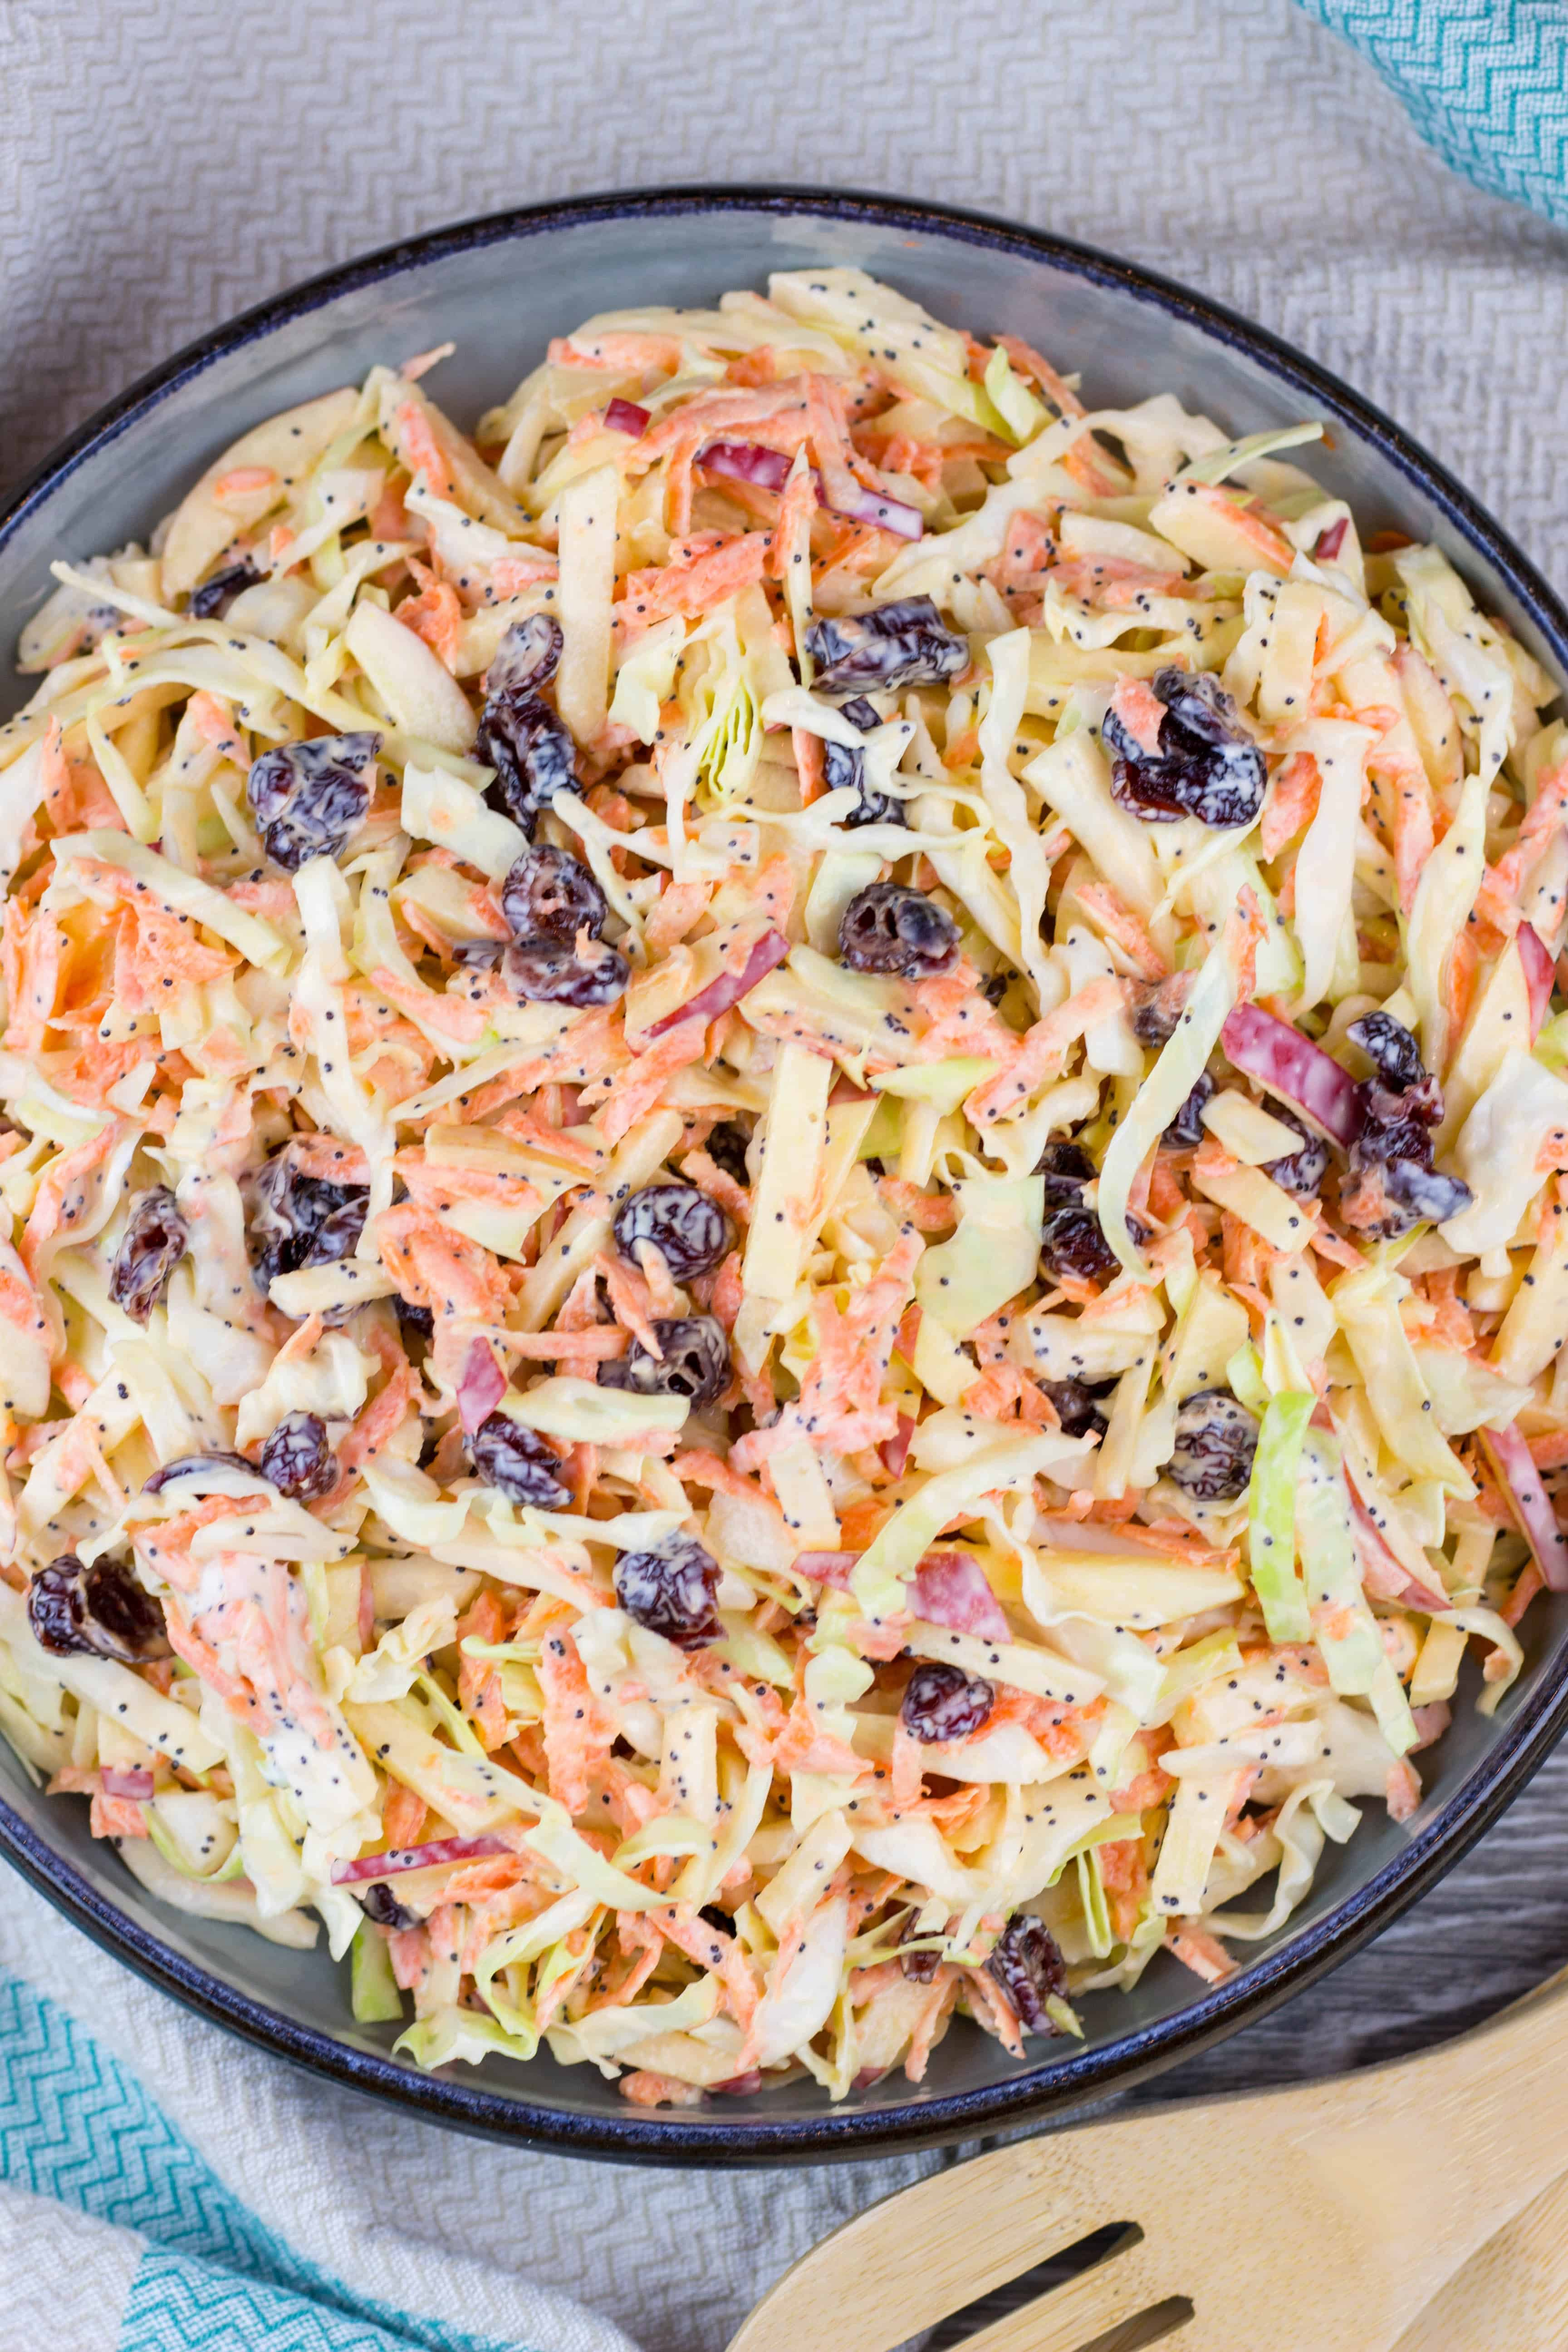 Apple Cranberry Coleslaw salad with creamy Greek yogurt dressing is a perfectly refreshing, crunchy side dish that can be served with just about anything, from pulled pork sandwiches to fried fish, or a nice juicy burger.